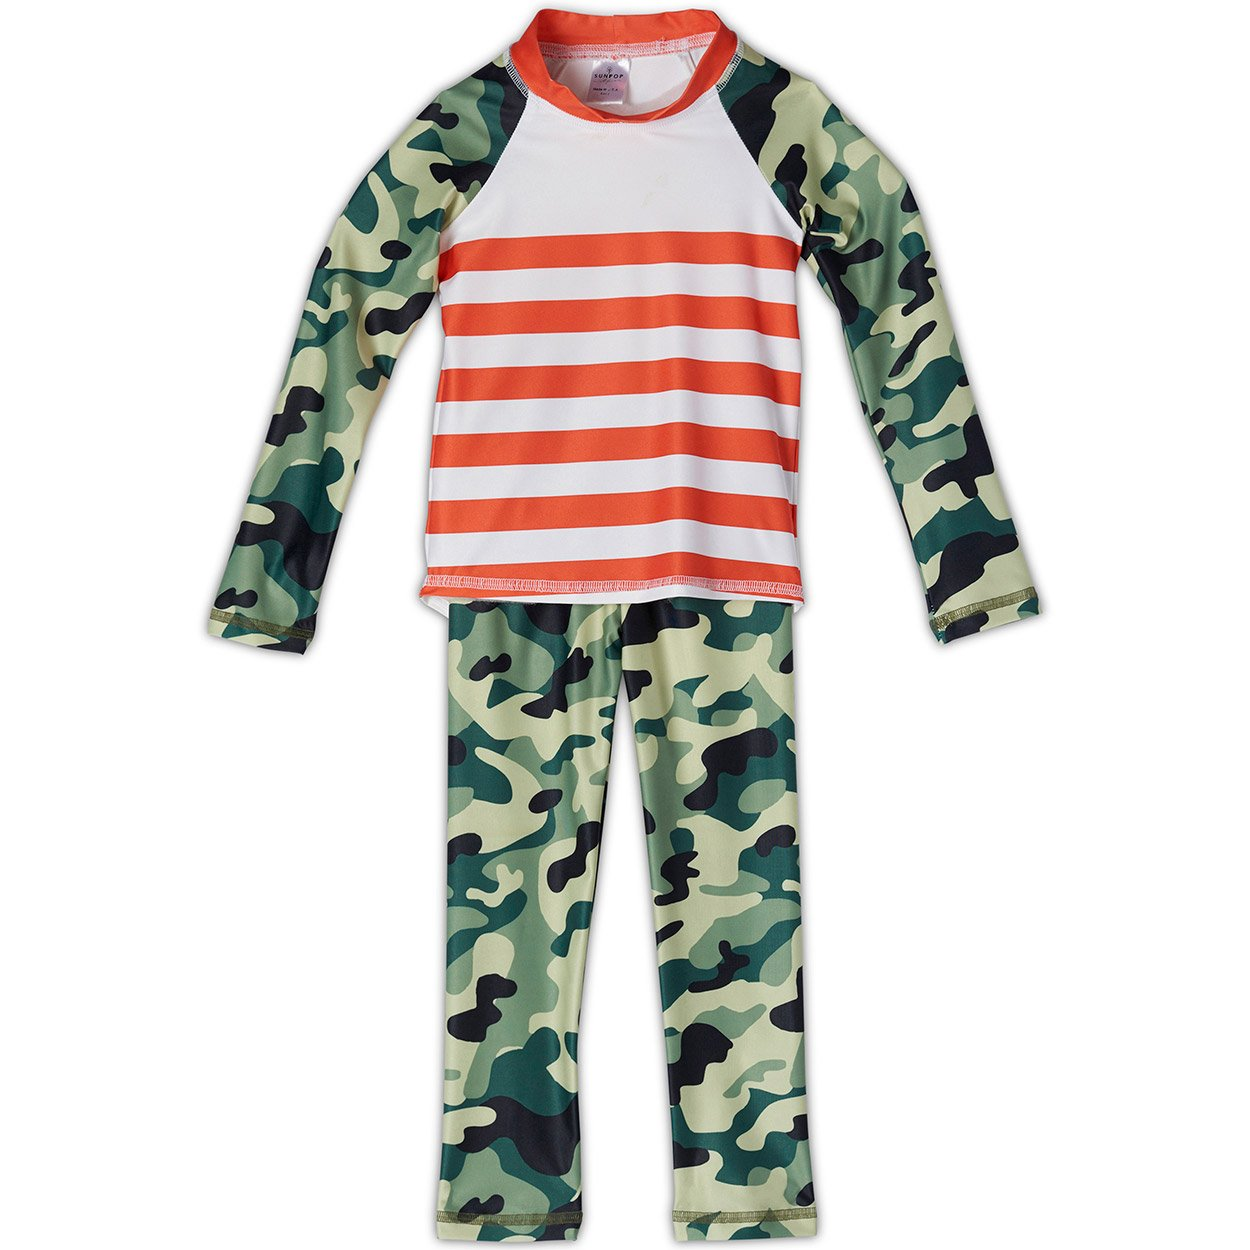 Green Camo 2-pc Rash Guard Set UPF 50+ for Boys